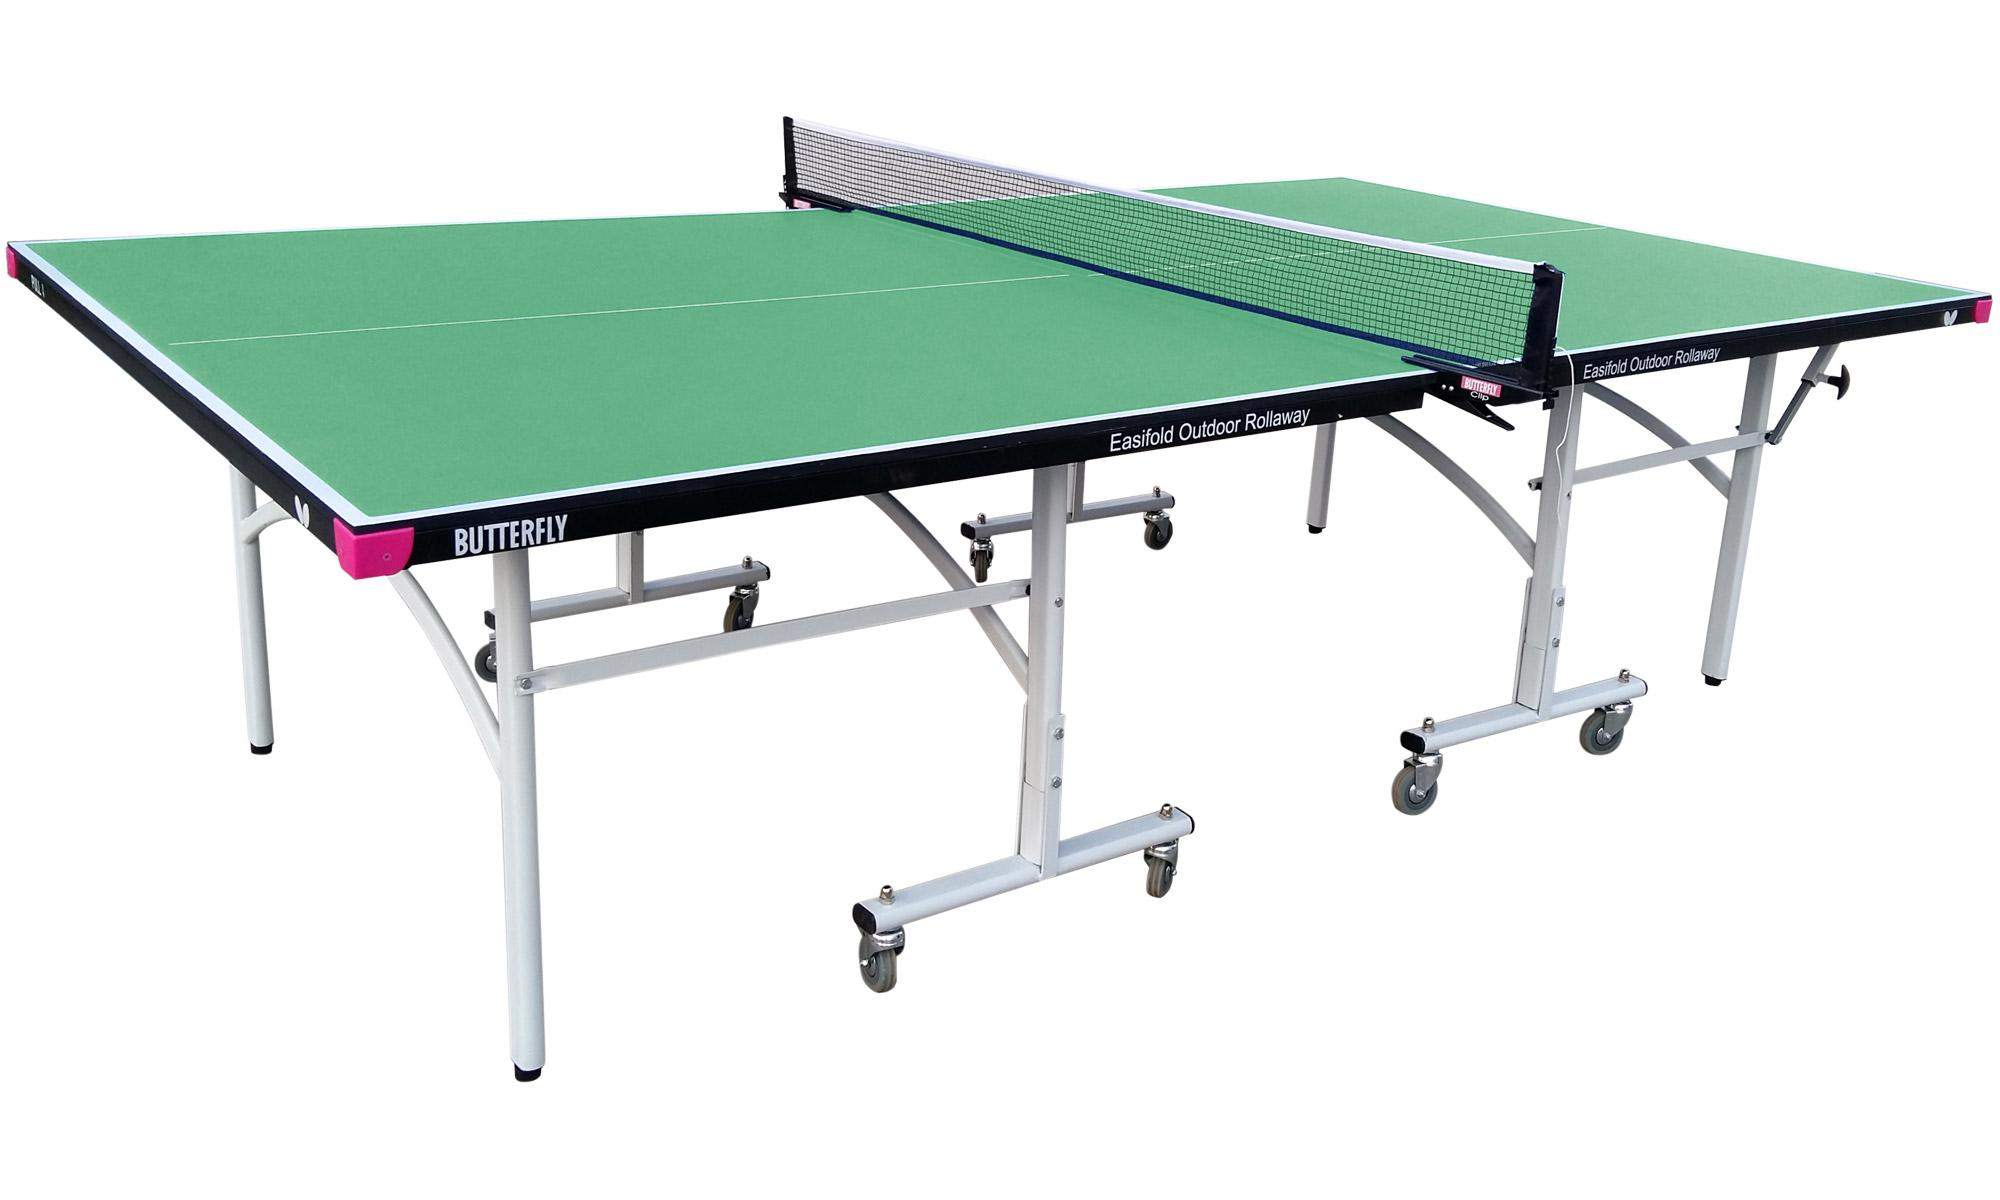 Butterfly Easifold 12 Outdoor Table Tennis Table